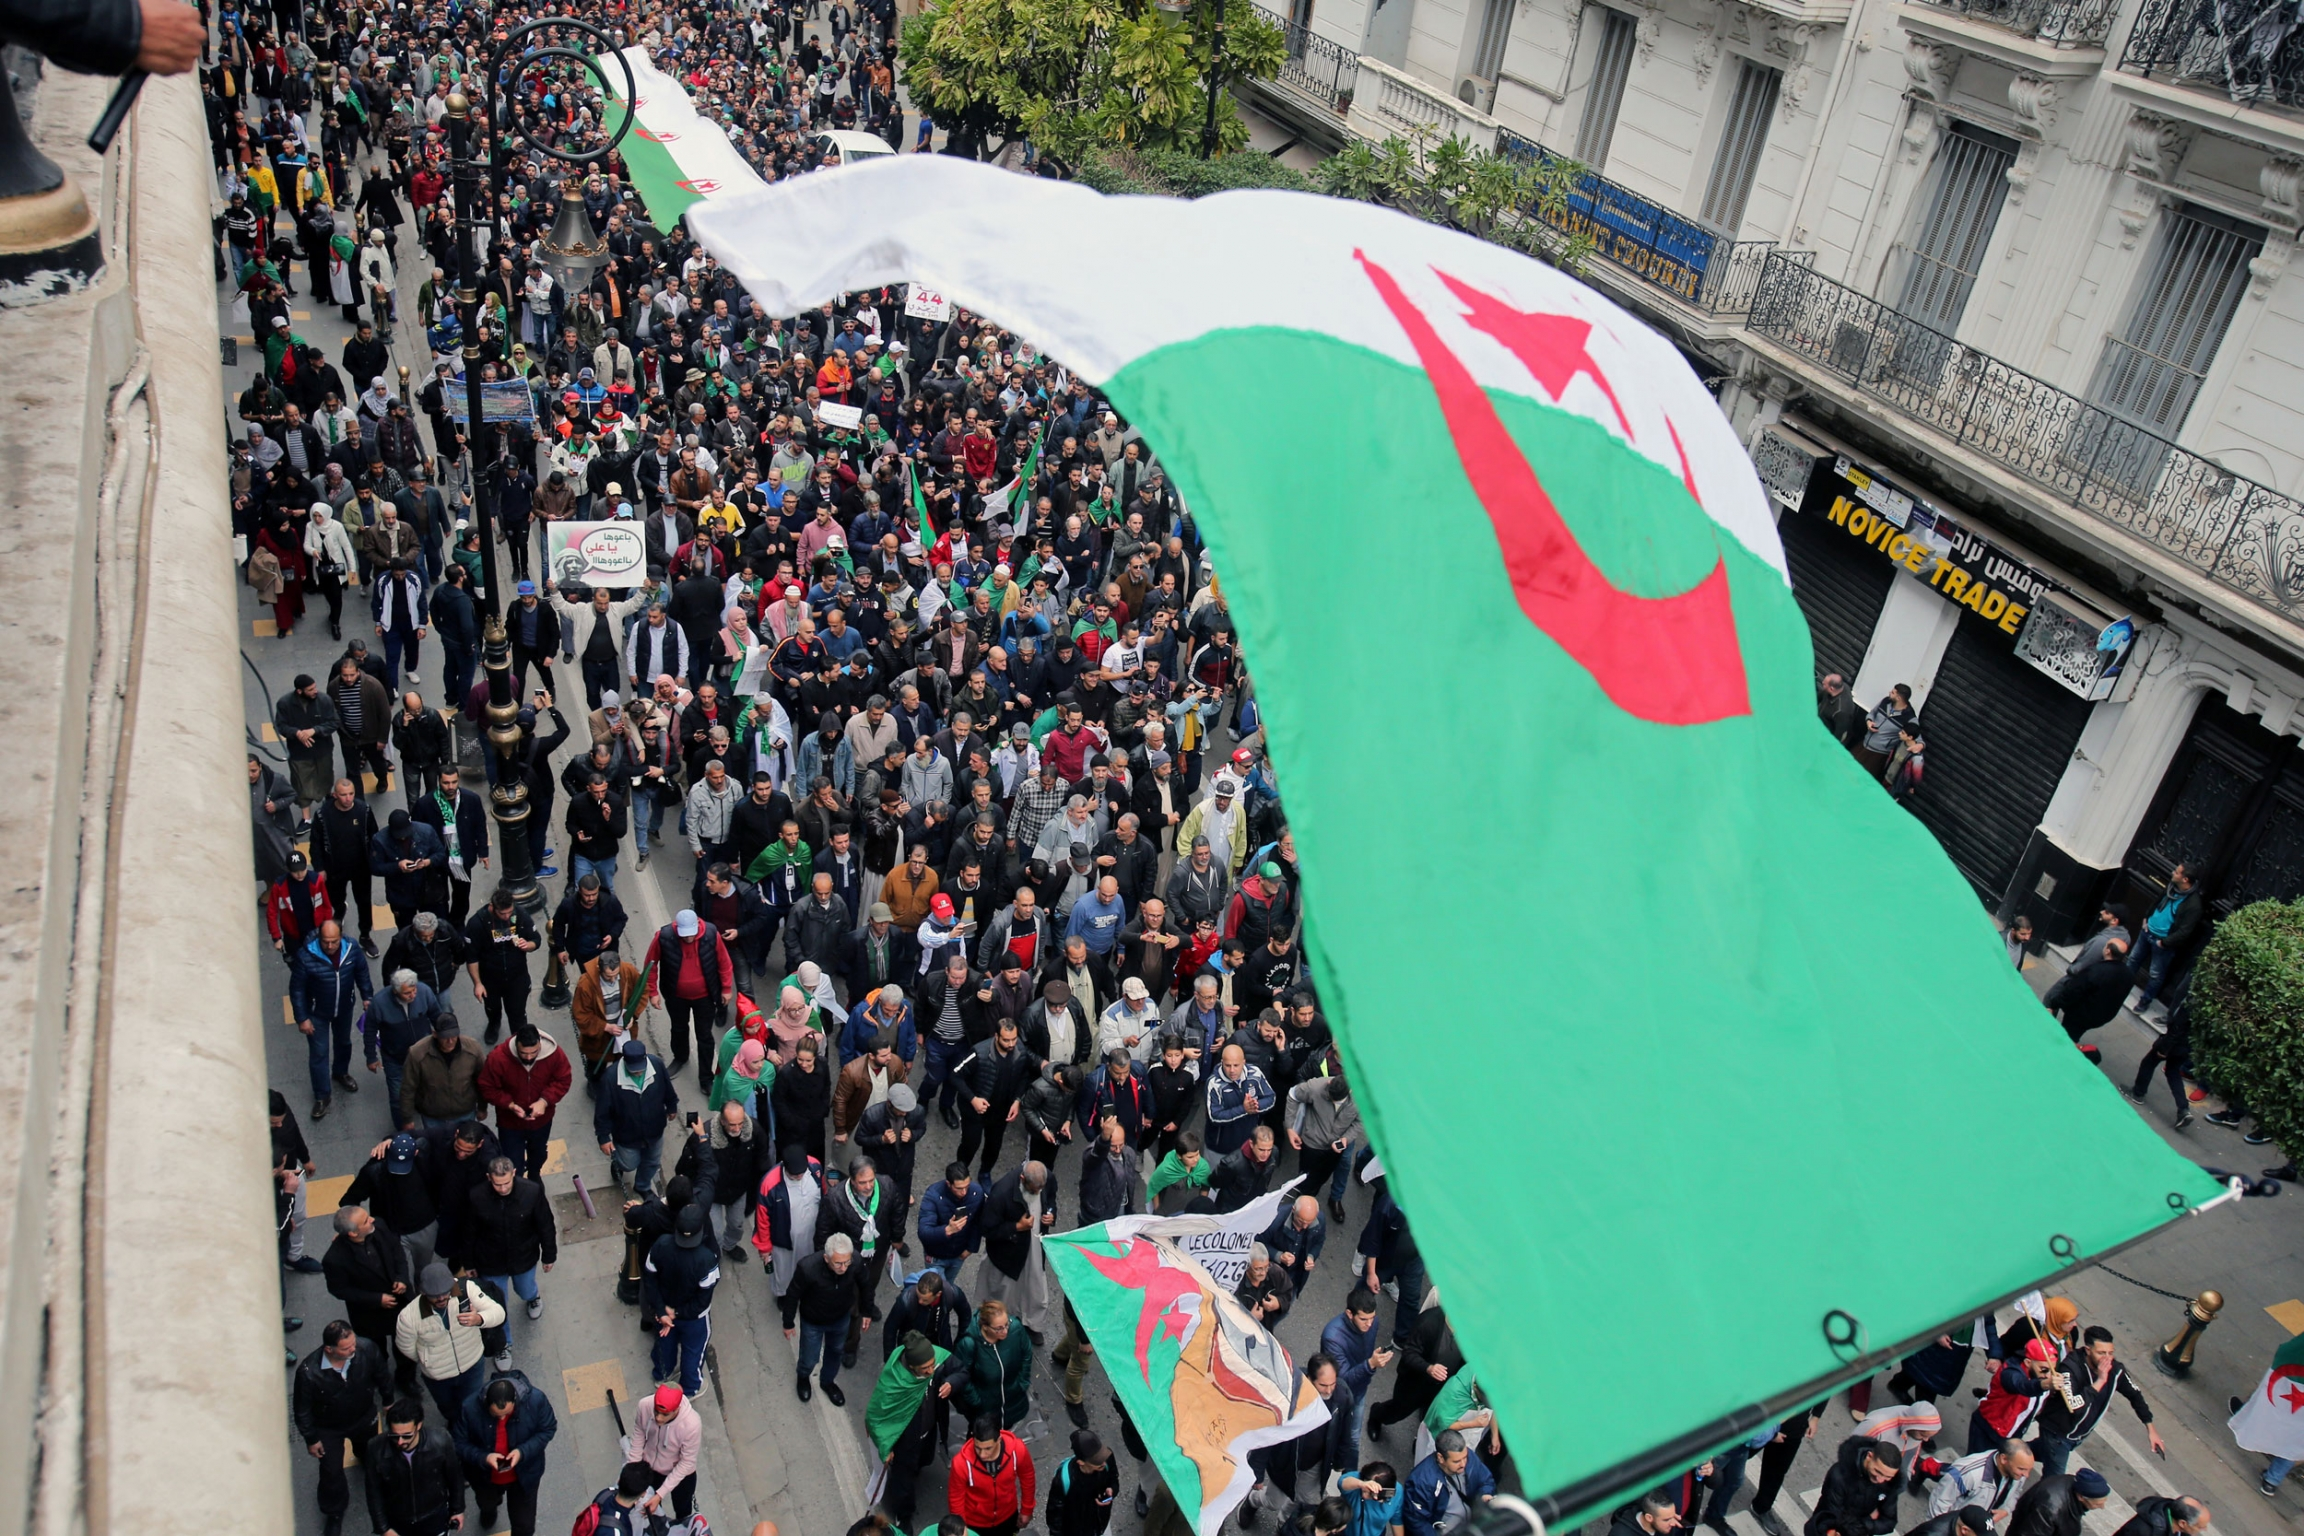 A street is shown filled with people and an Algerian flag is in the nearground.